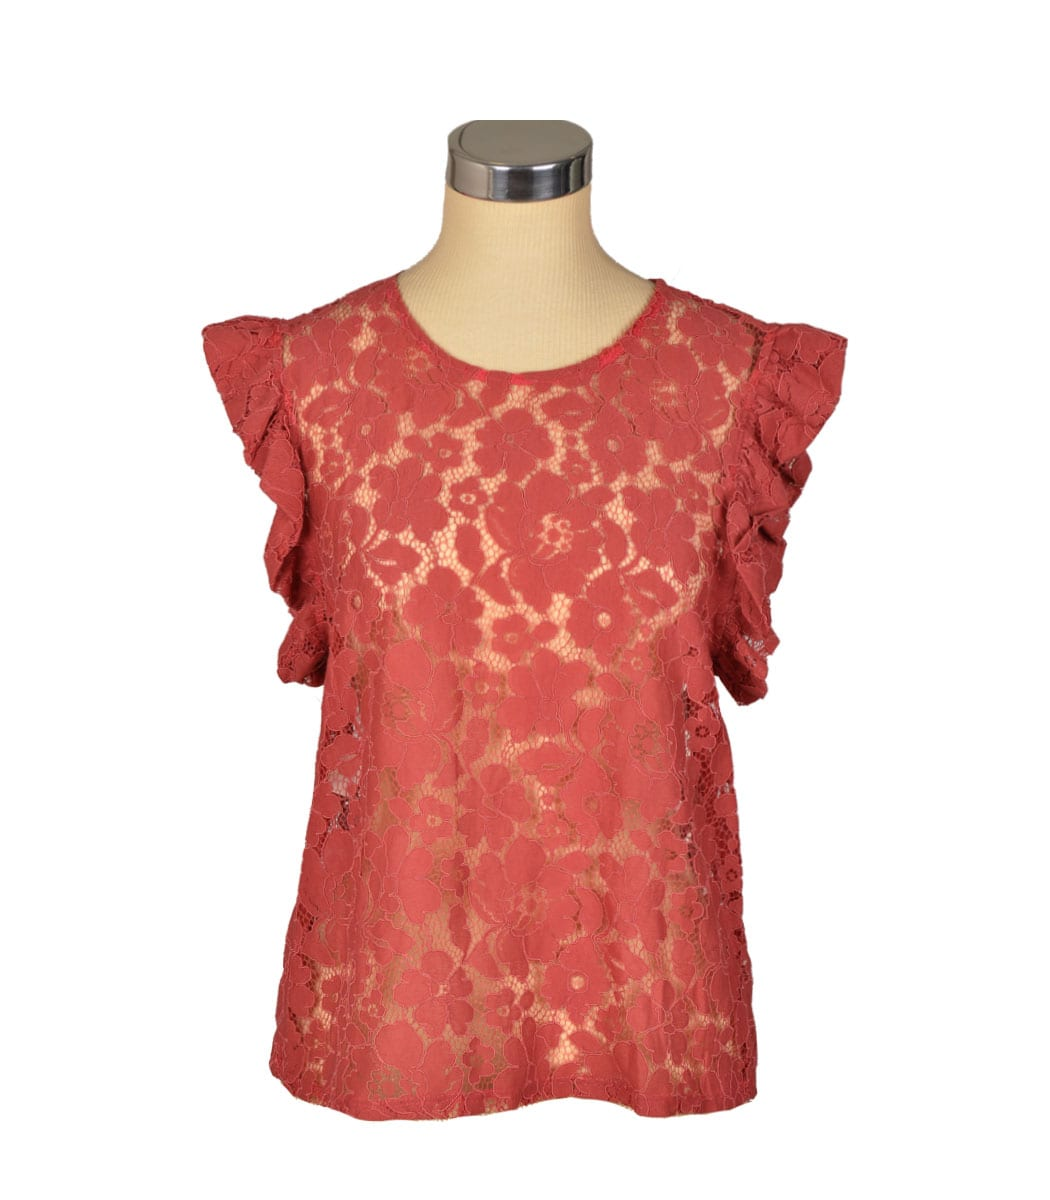 Lace frill sleeve top